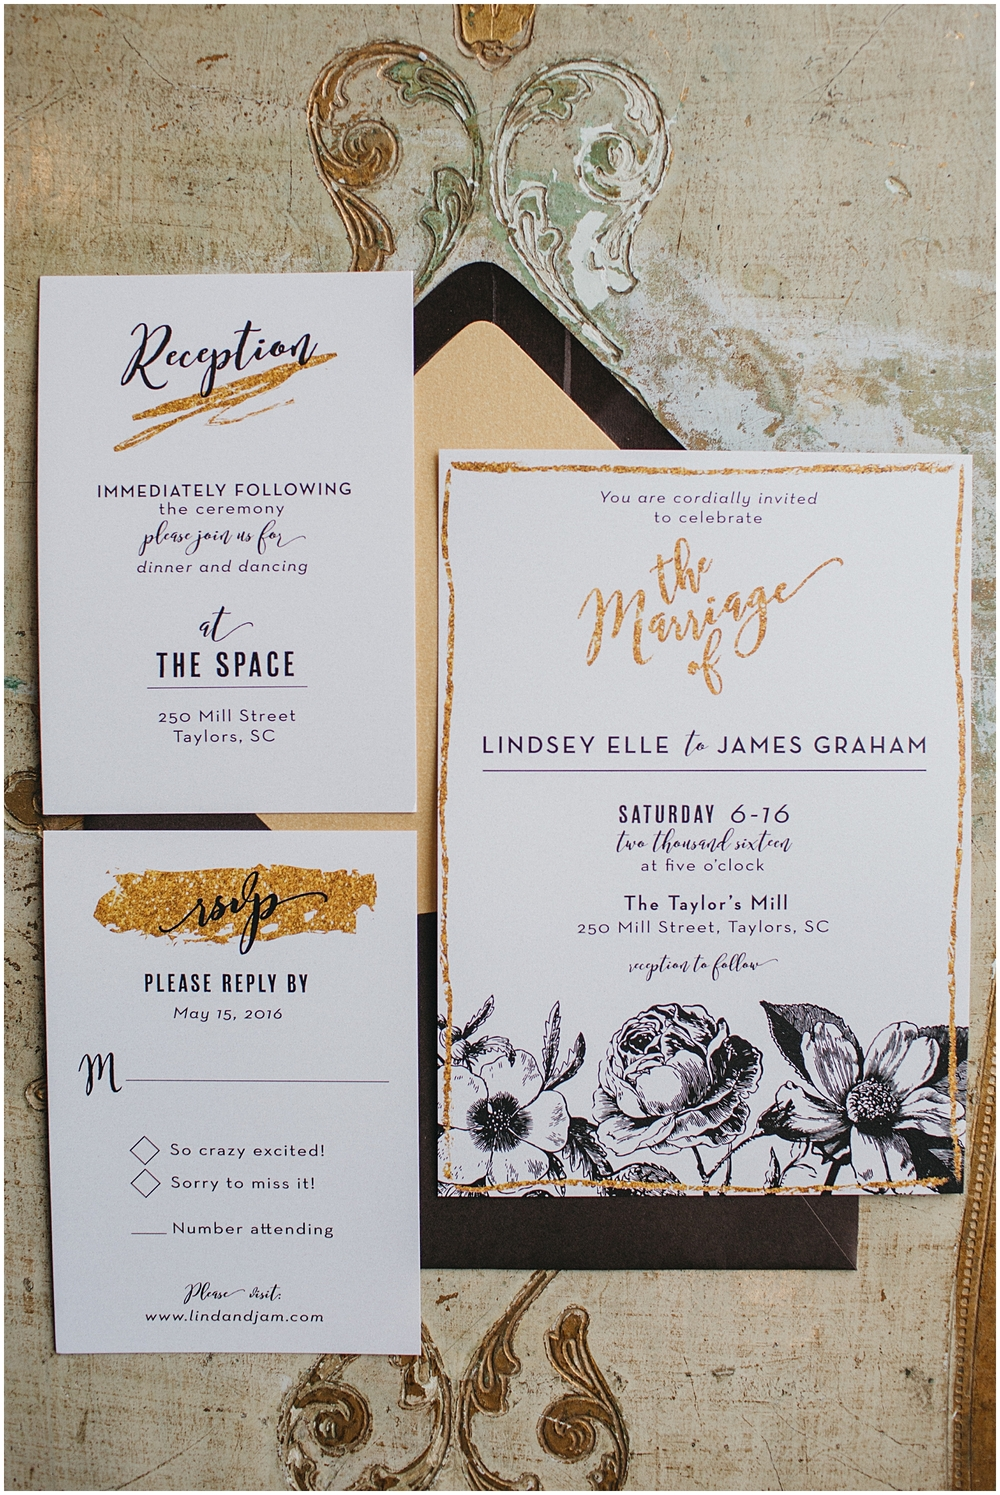 Bespoken Weddings | Invitations | Gold and black